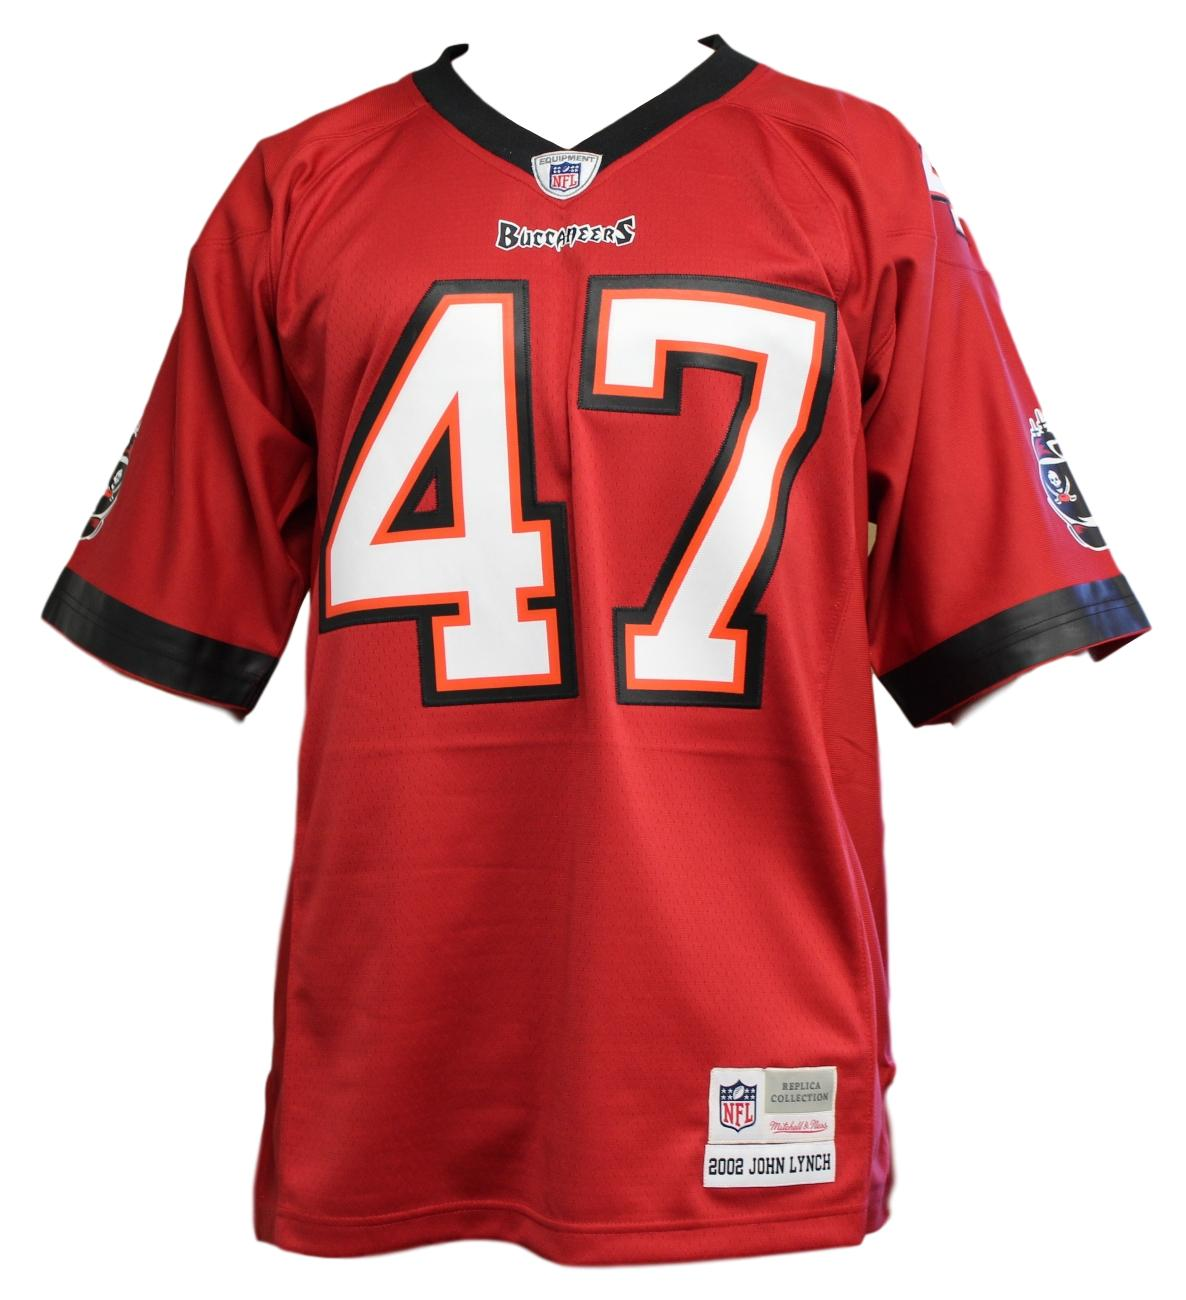 John Lynch Tampa Bay Buccaneers NFL Mitchell   Ness Throwback Premier Jersey 68b329418